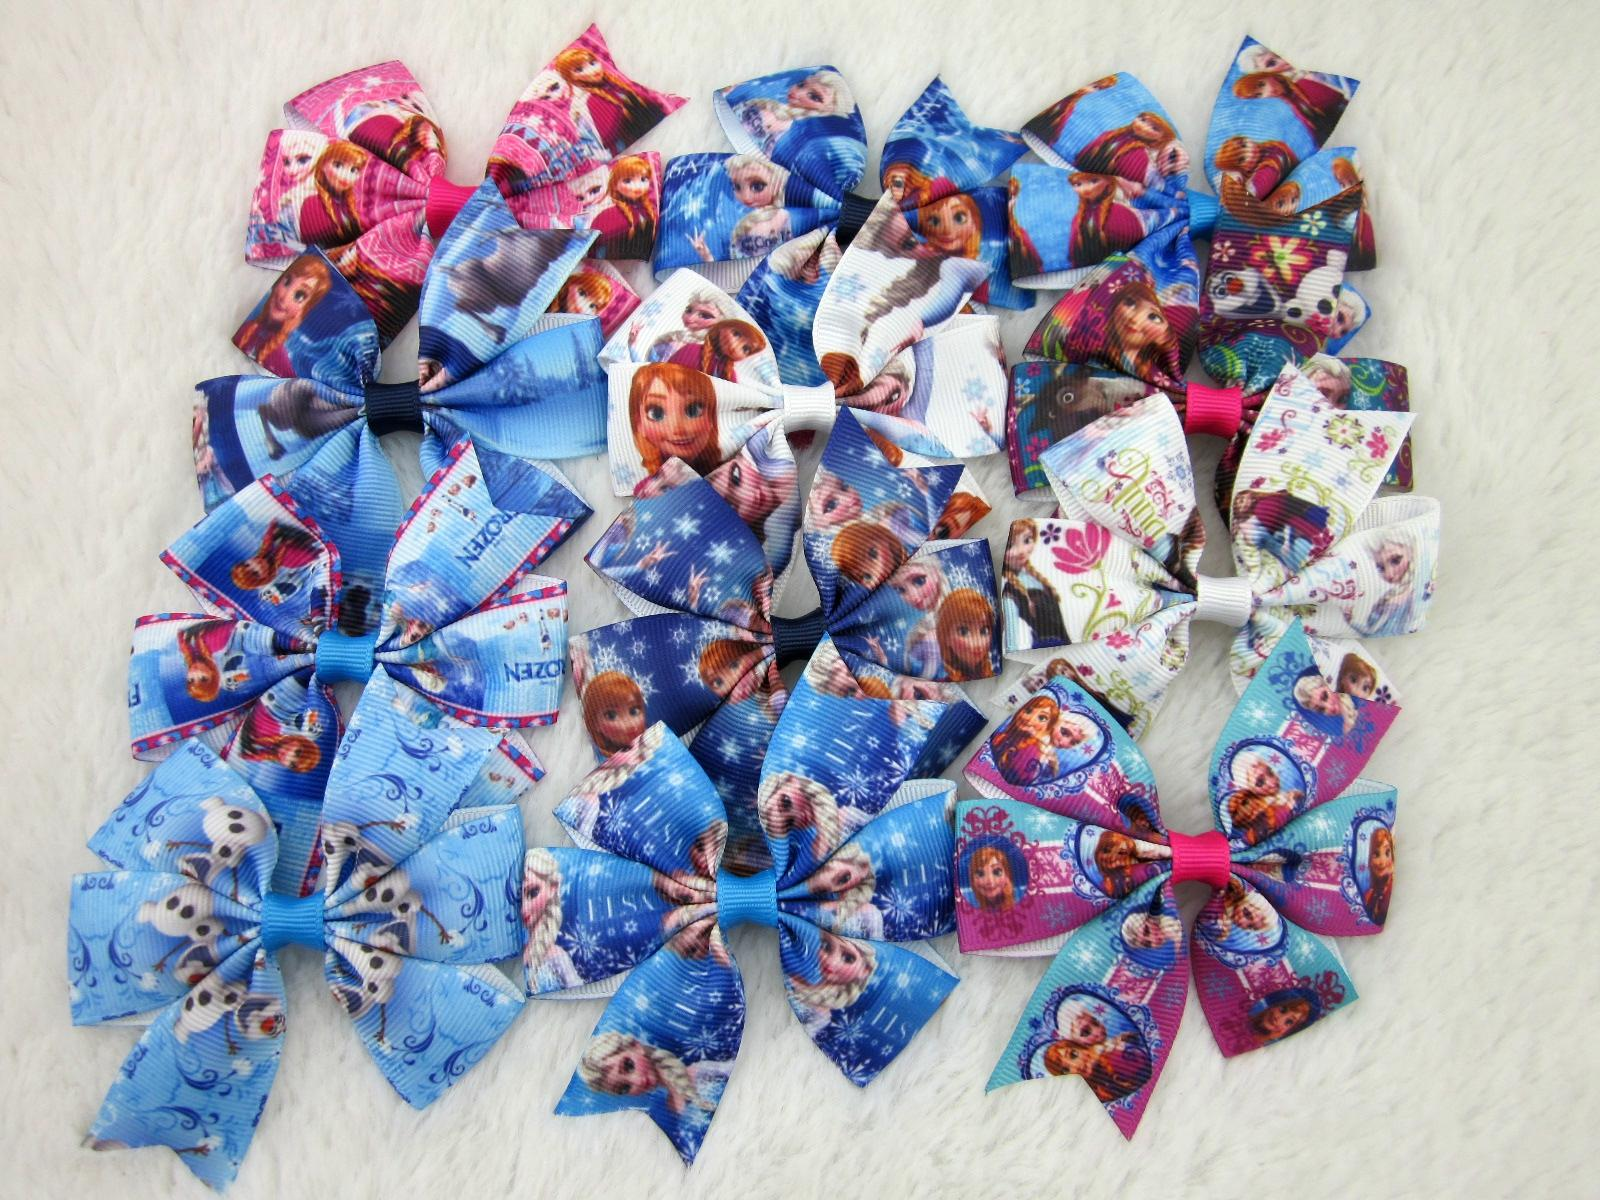 Ha hair bow ribbon wholesale - New Design 3inch Ribbon Frozen Hair Bows With Clip For Baby Kids Buotique Frozen Bows Hair Accessories 24pcs Lot